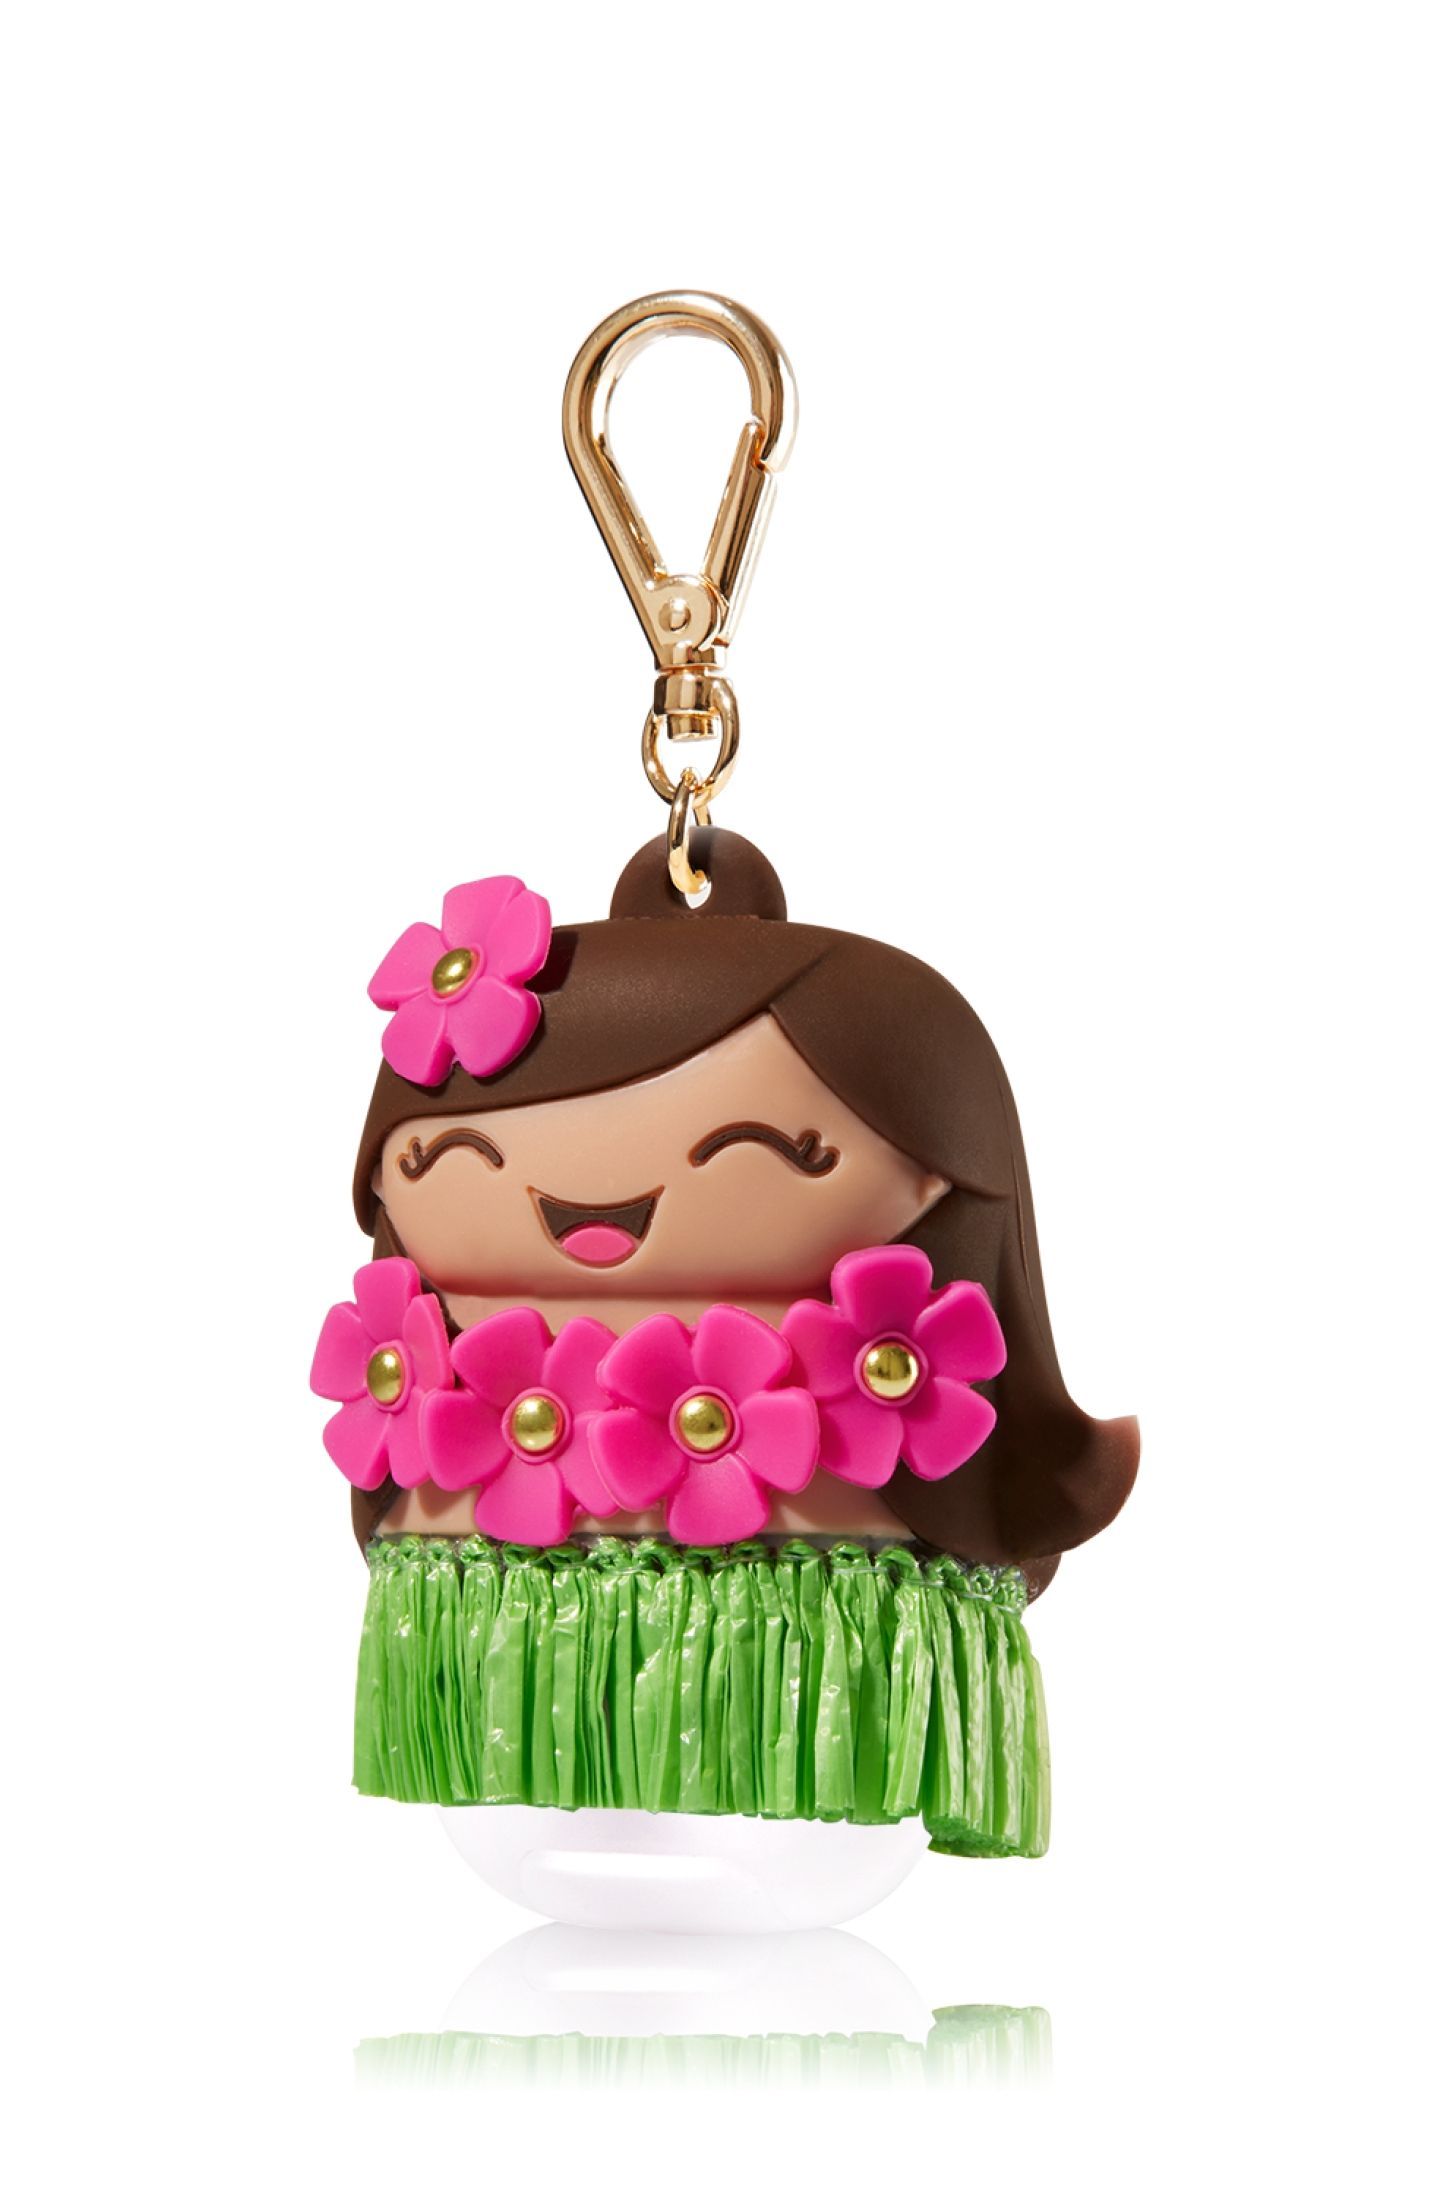 Hula Girl Pocketbac Holder Bath Body Works Bath Body Works